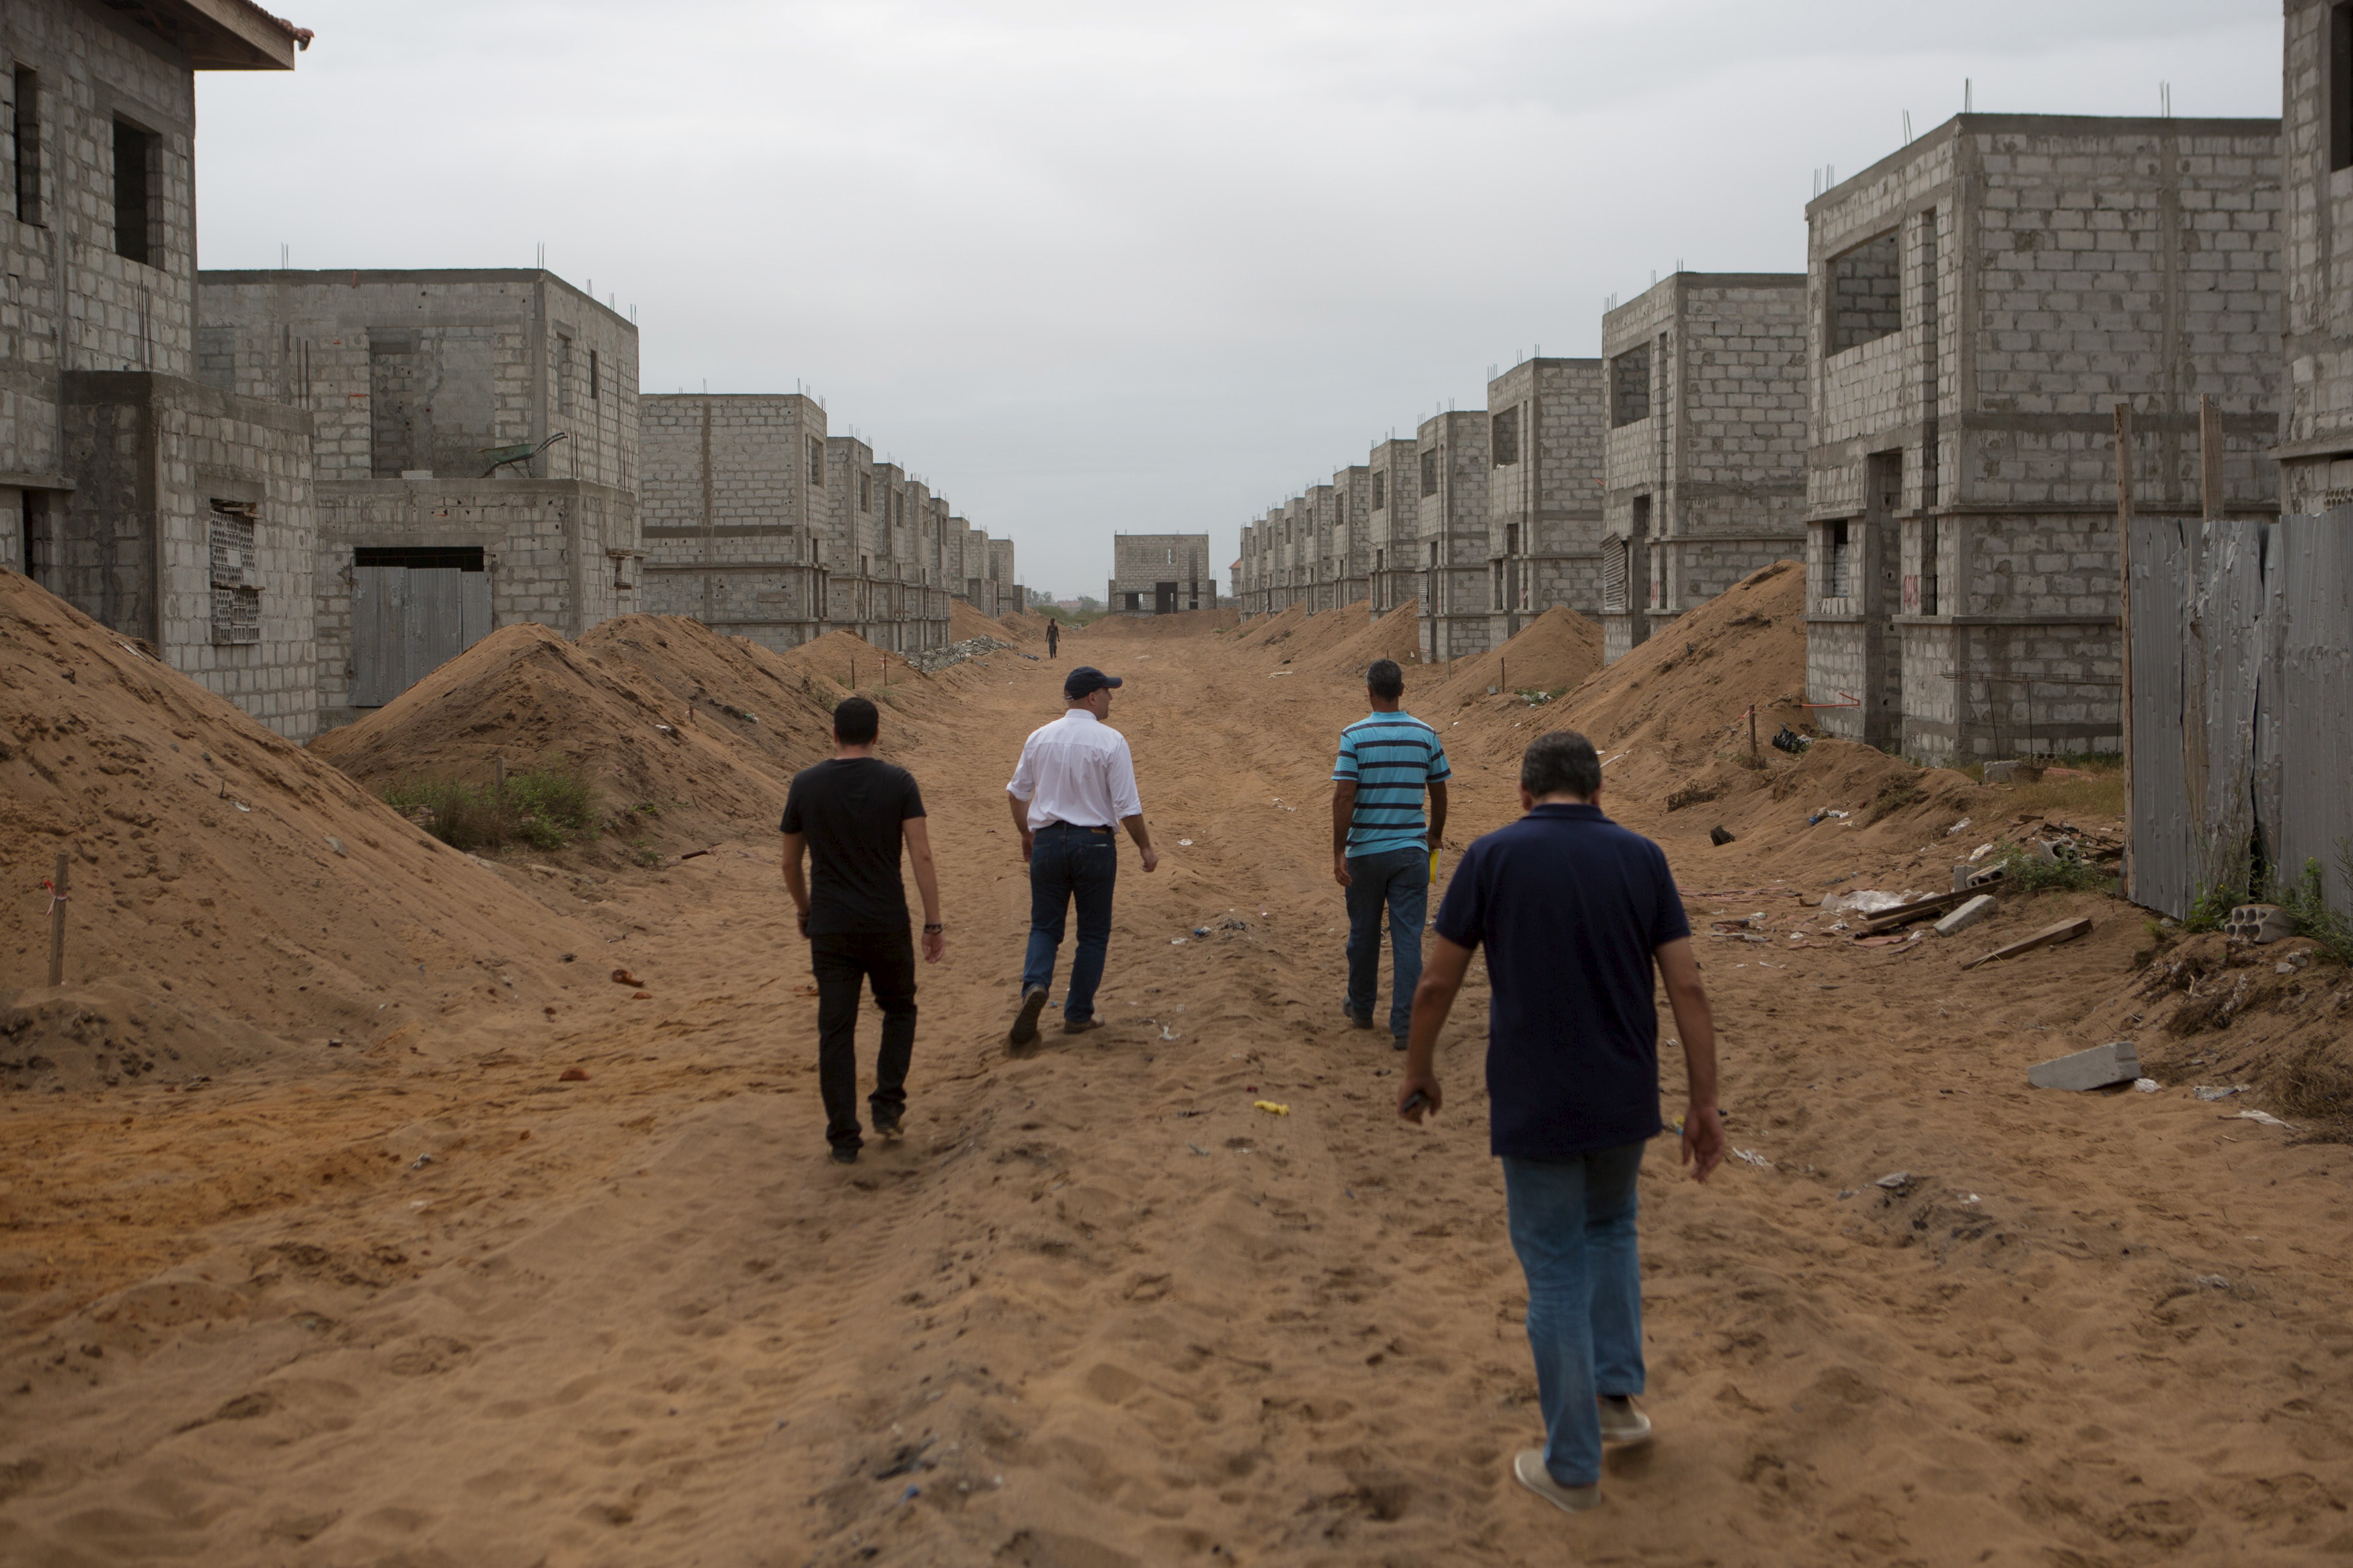 """Chadi Srour (in white shirt), technical director of real estate company Sipim, walks at a Sipim development site with his colleagues in Grand Bassam, Ivory Coast, September 15, 2015. From Abidjan's packed airport arrivals hall to the buildings mushrooming across the capital, Ivory Coast is booming, a rare African bright spot as the world's biggest cocoa producer bounces back from a 2011 civil war. Buyers of luxury apartments include Ivorians living overseas, while promoters from Morocco, Turkey and China are attracted by tax breaks. Elections - the source of national unrest four years ago - are due in a month but there is no let-up in investment given expectations of an easy victory for incumbent Alassane Ouattara. The government predicts 9.6 percent growth this year, making the former French colony the standout performer on a continent hammered by a slump in commodity prices, capital outflows and tumbling currencies.    REUTERS/Joe PenneyPICTURE 17 OF 33 FOR WIDER IMAGE STORY """"IVORY COAST IS BOOMING"""". SEARCH """"BOOMING PENNEY"""" FOR ALL IMAGES - RTX1SEEB"""